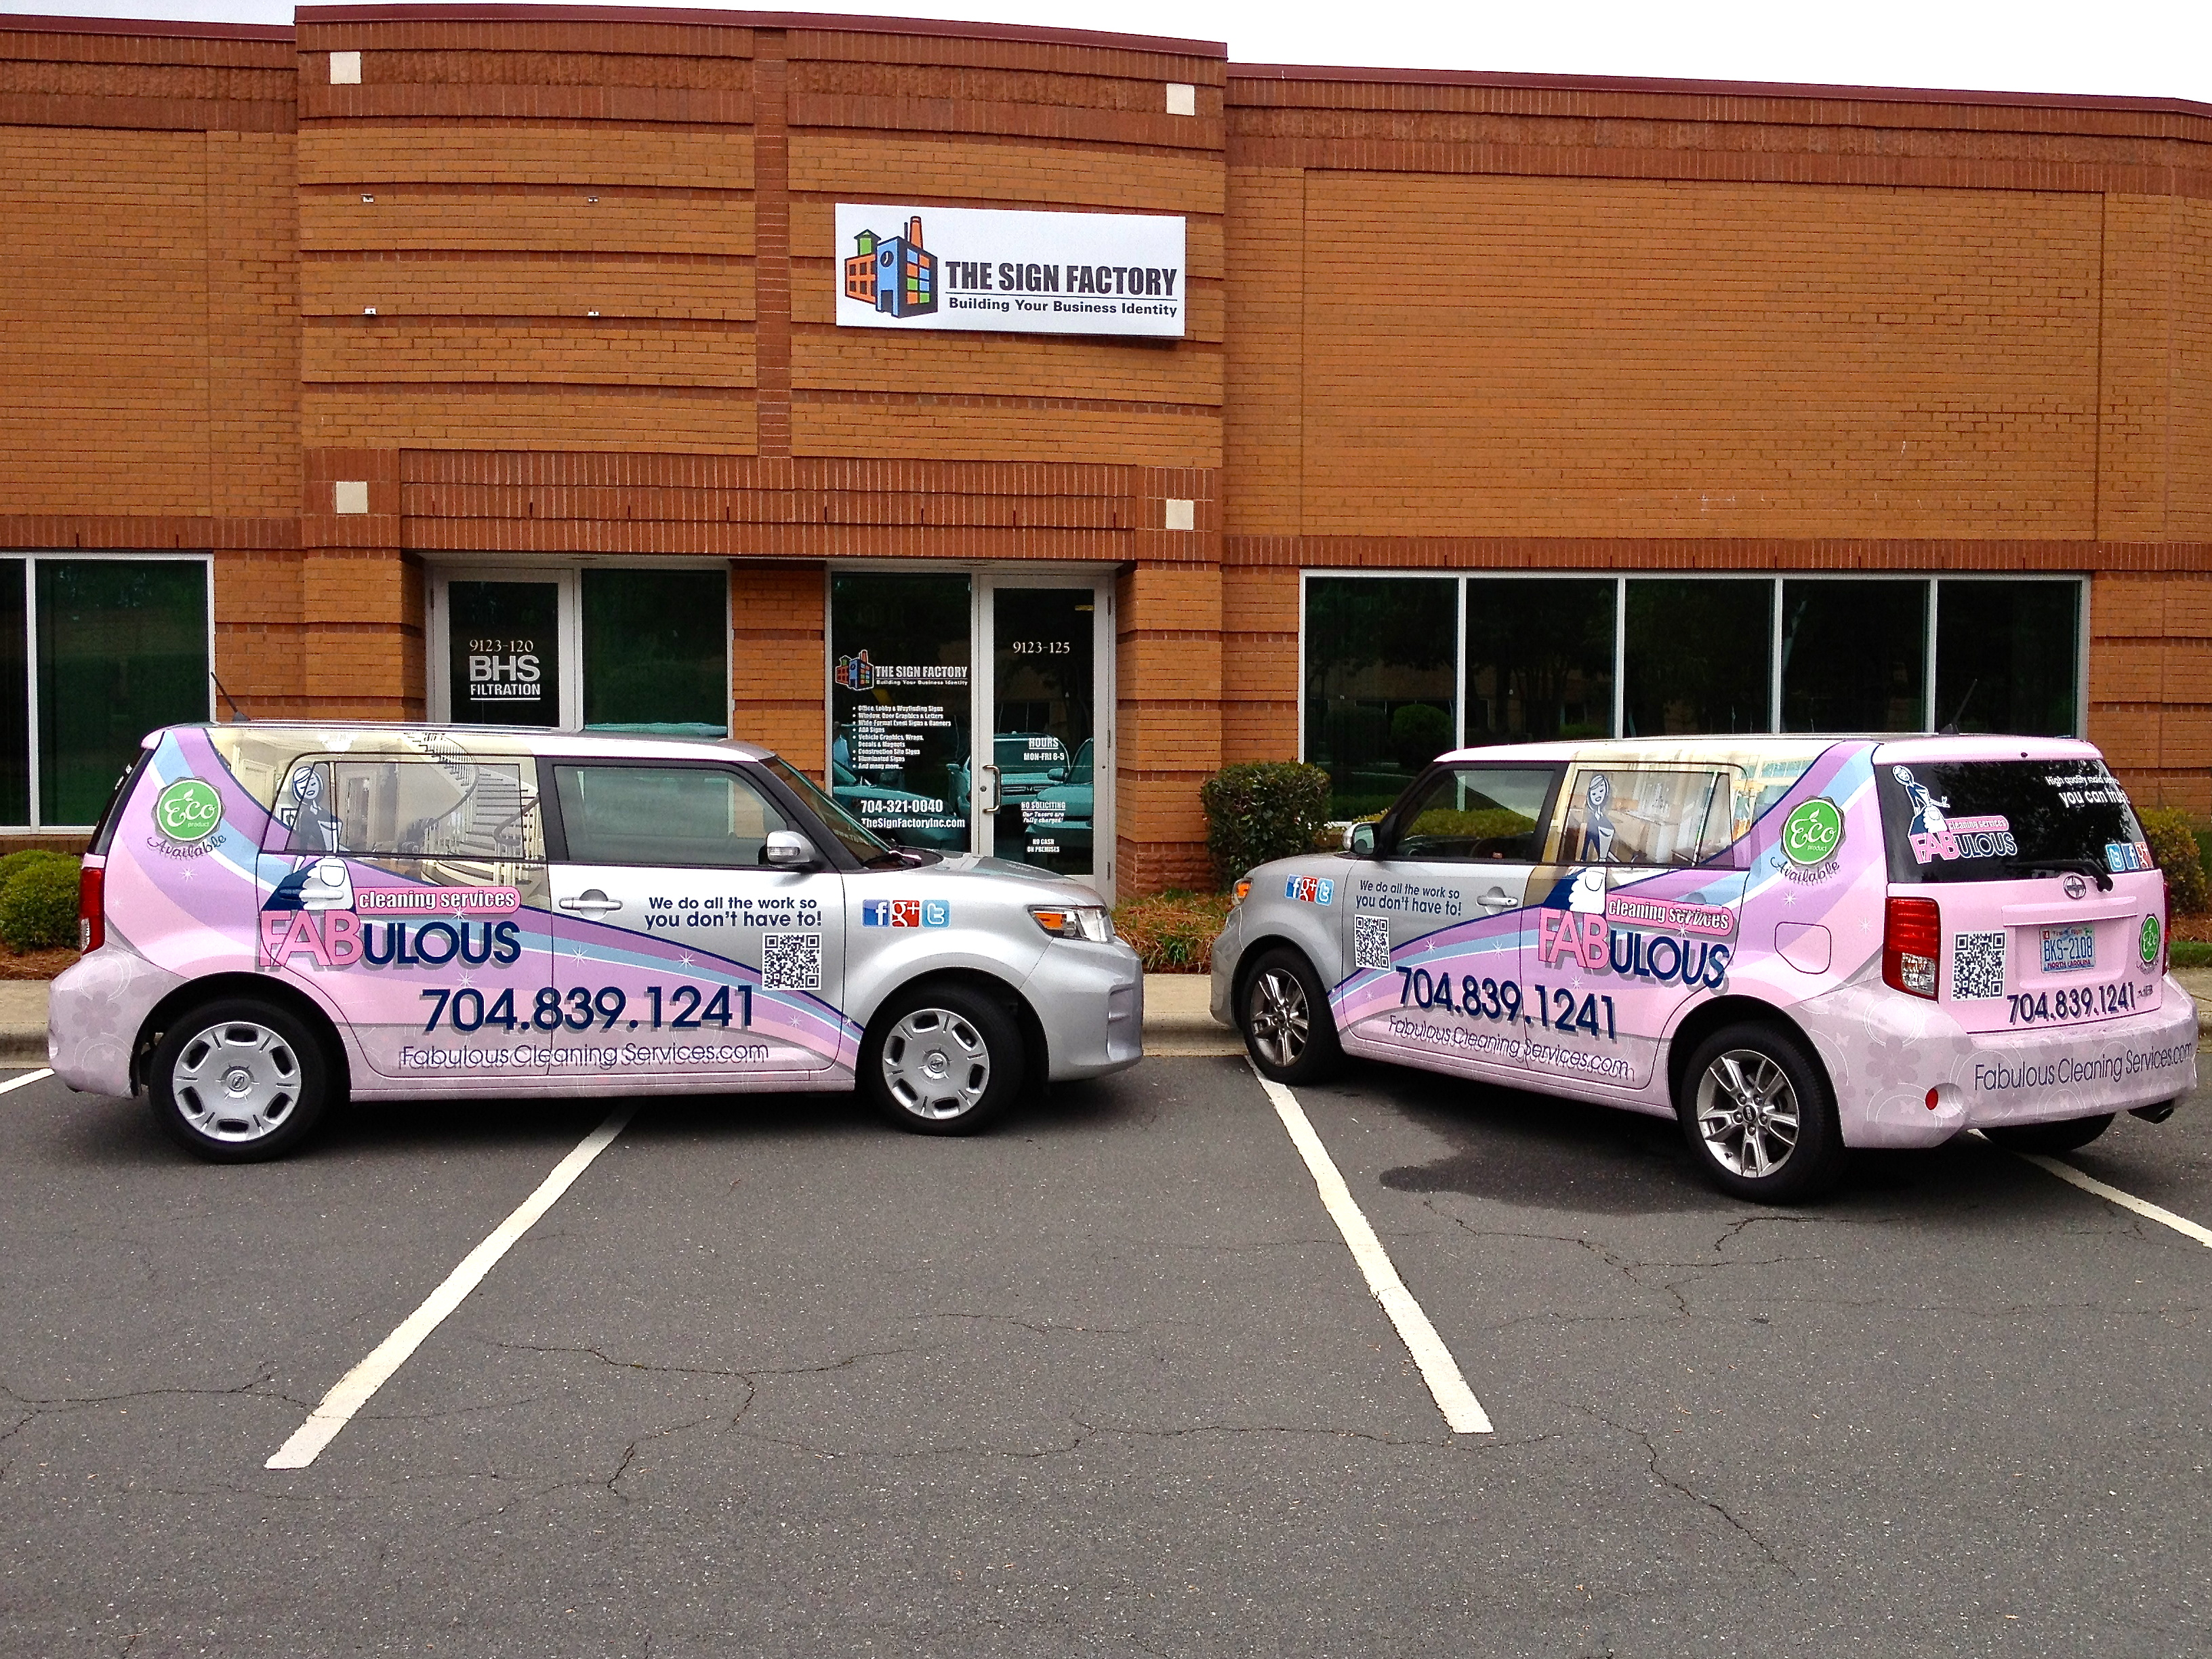 Fabulous Cleaning Services Uses Fleet Vehicle Wraps to Brand in ...